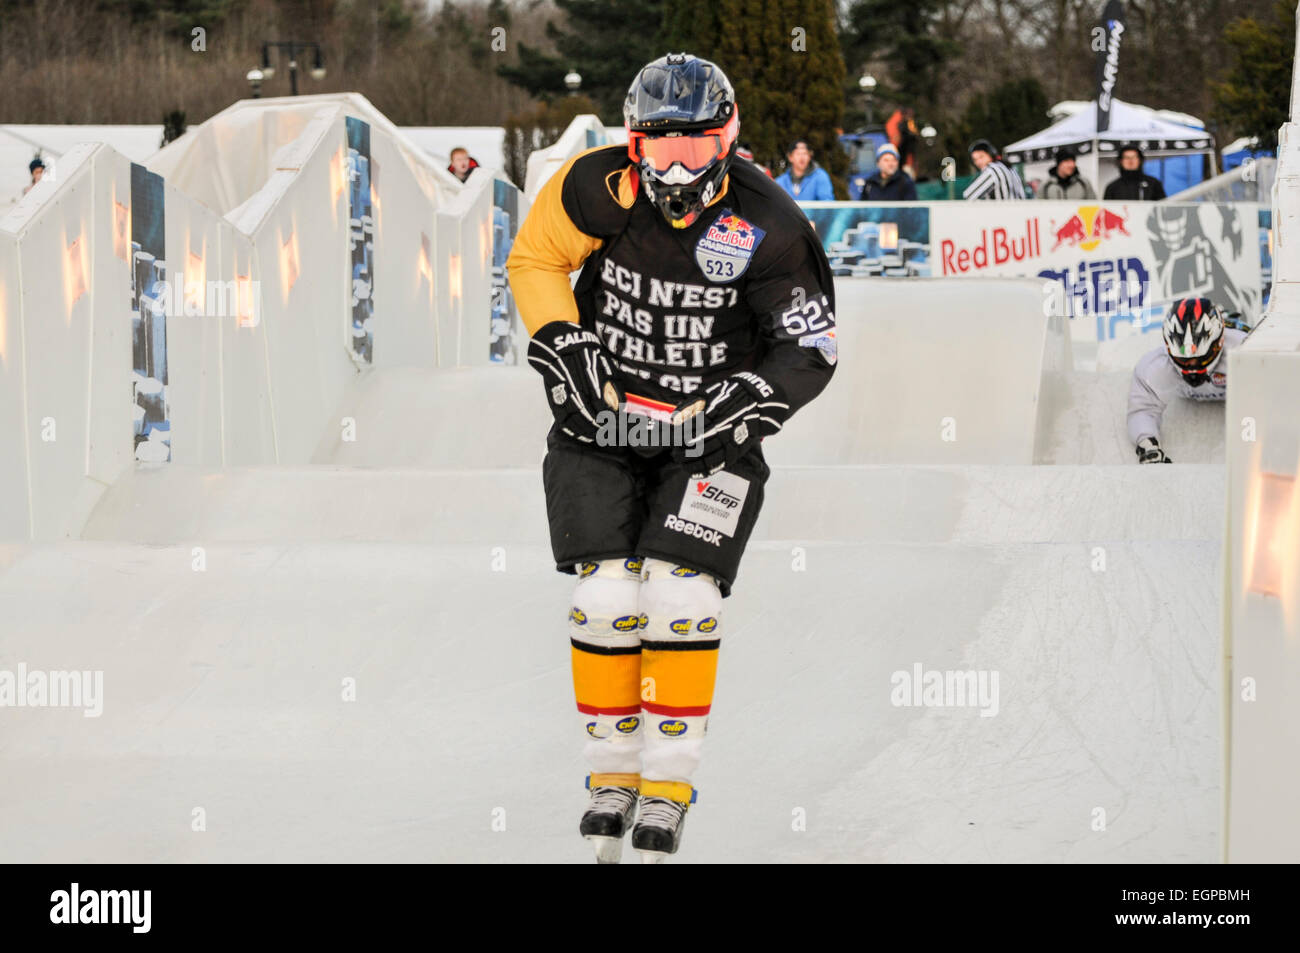 Belfast, Northern Ireland. 20/02/2015 - Red Bull Crashed Ice Team Competition practices - Stock Image